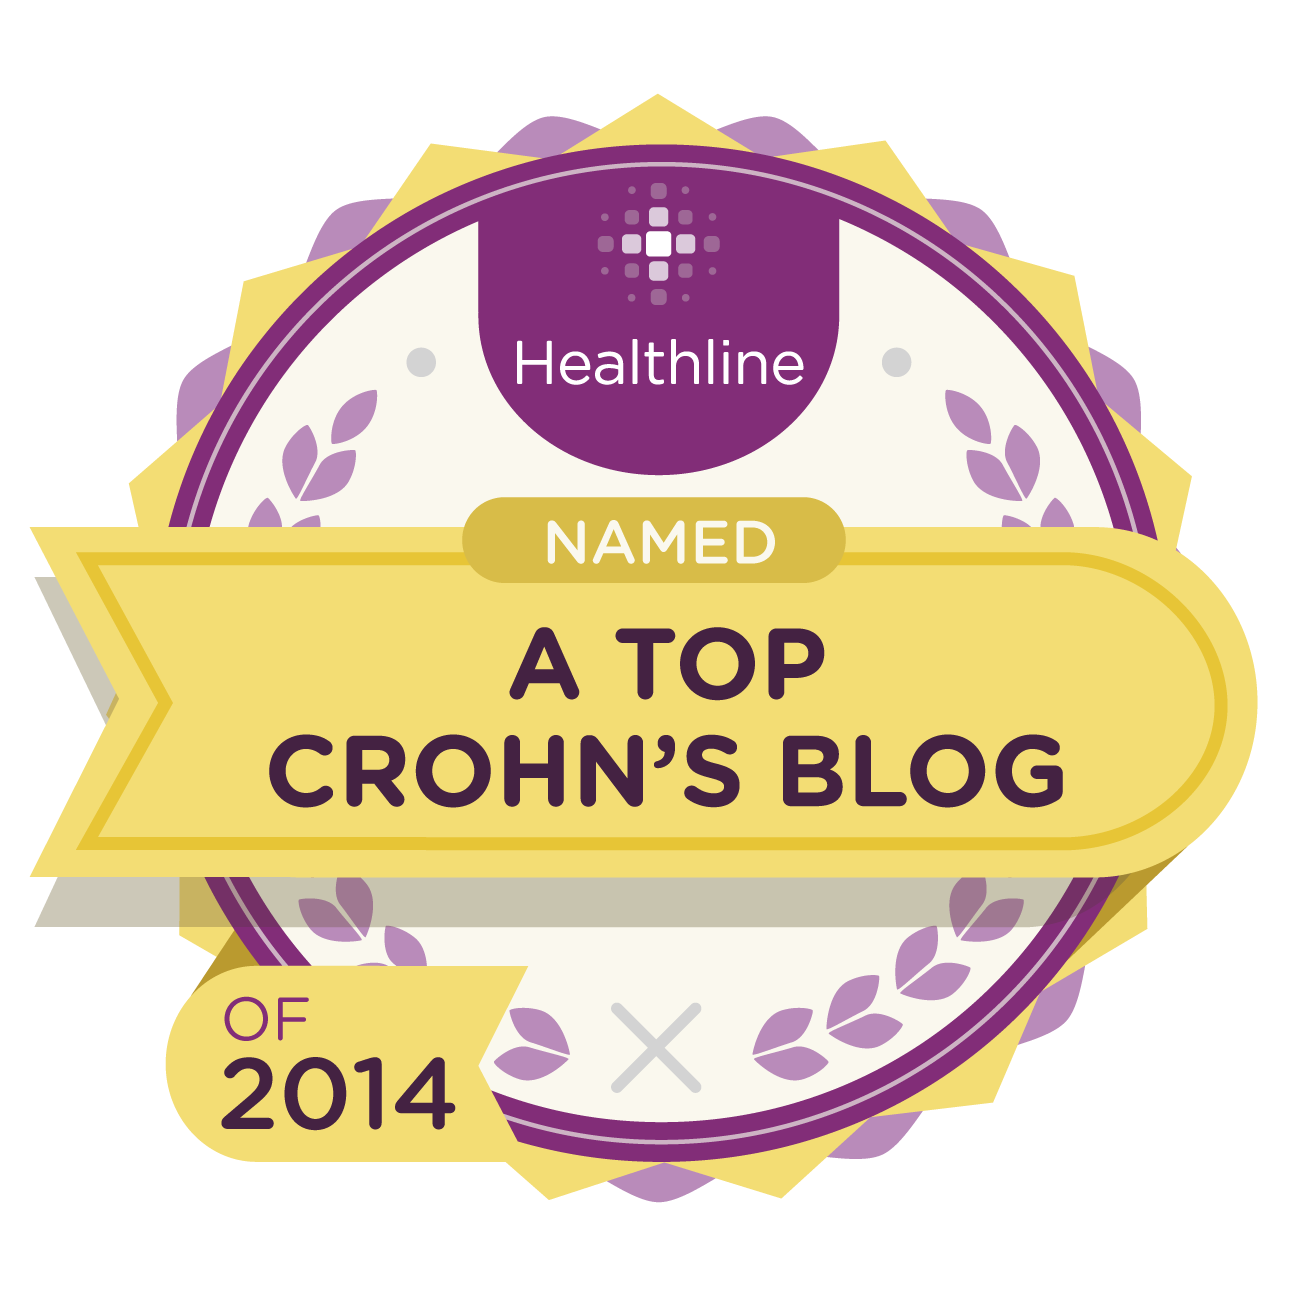 The Best Crohn's Disease Blogs of 2014